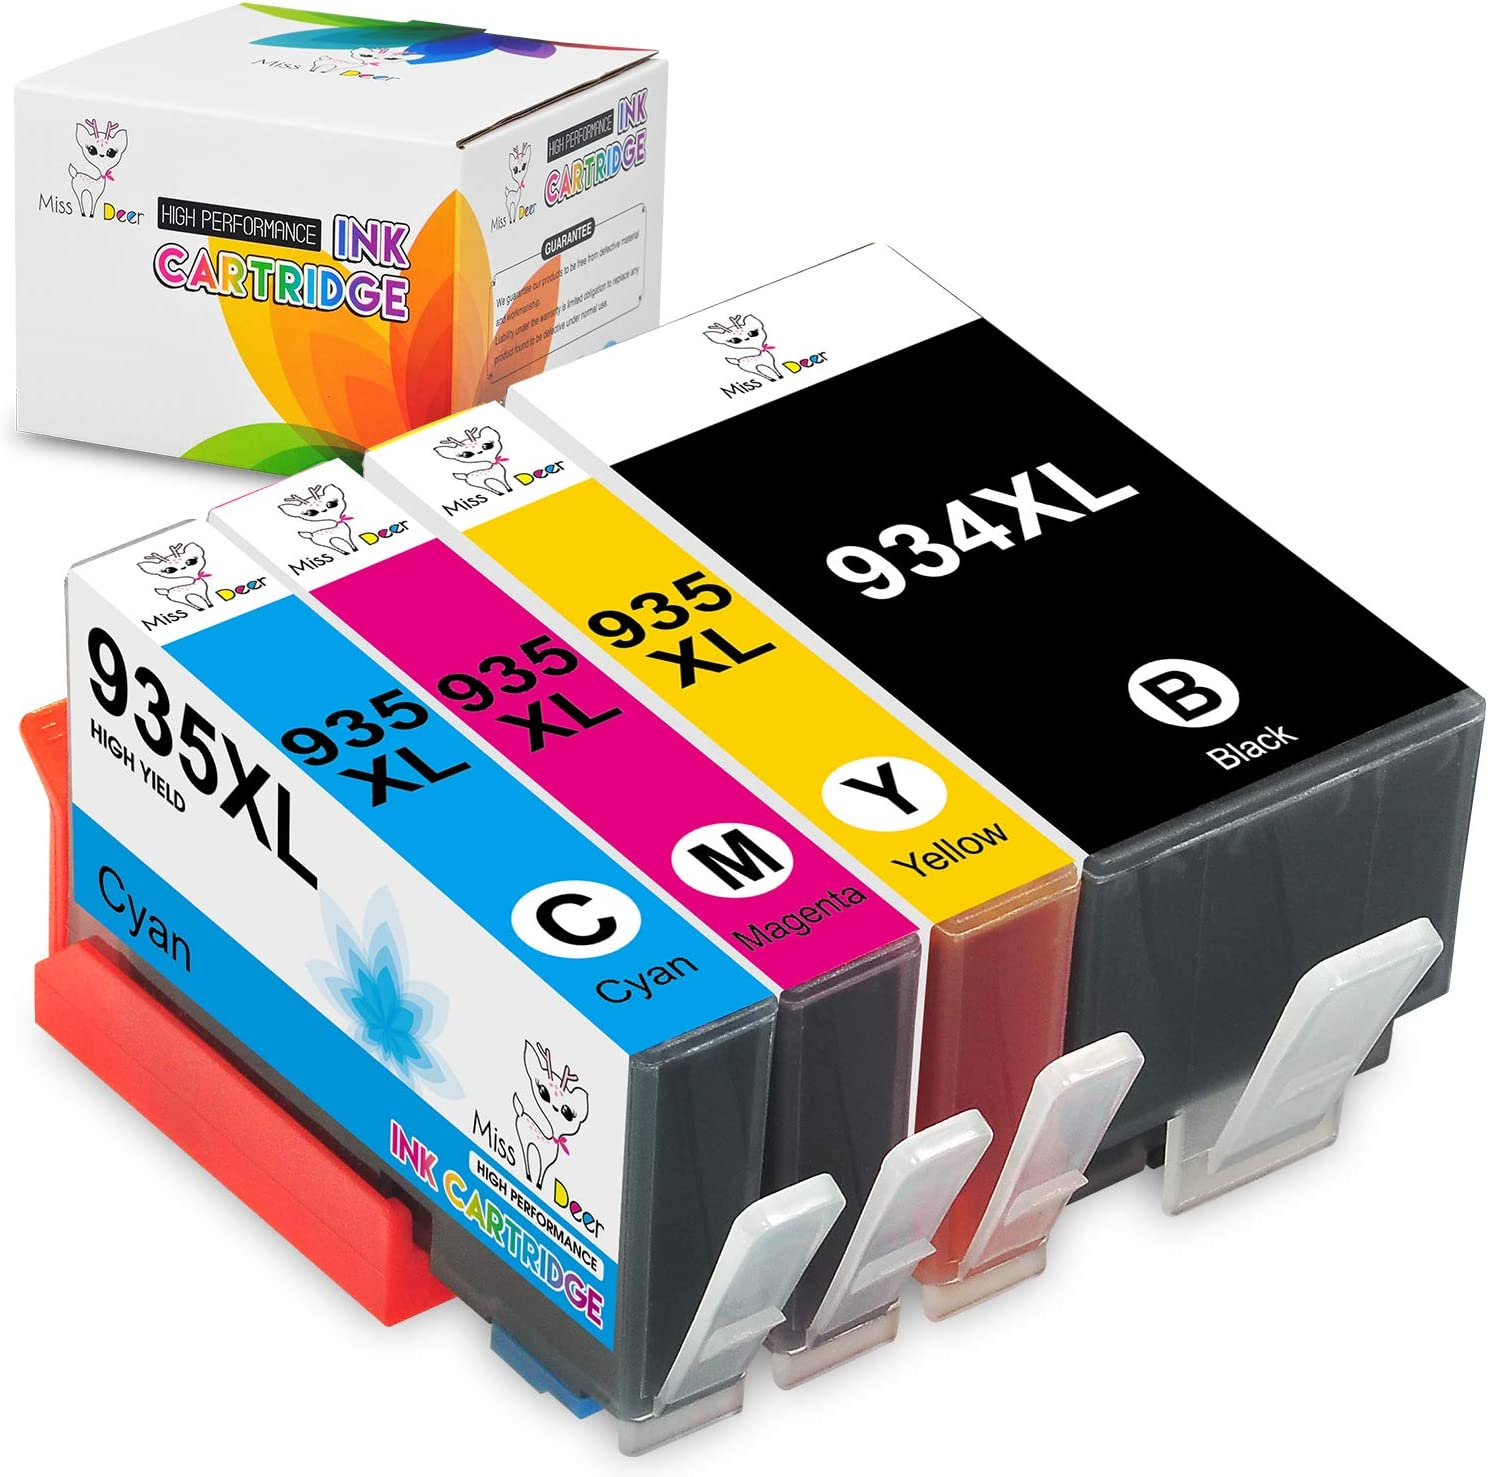 Miss Deer Compatible Ink Cartridge Replacement for 934XL 935XL Work with Officejet 6812 6815 6820 6825 Officejet Pro 6230 6830 6835 Printer (1 Black, 1 Cyan, 1 Magenta, 1 Yellow) 4 Pack